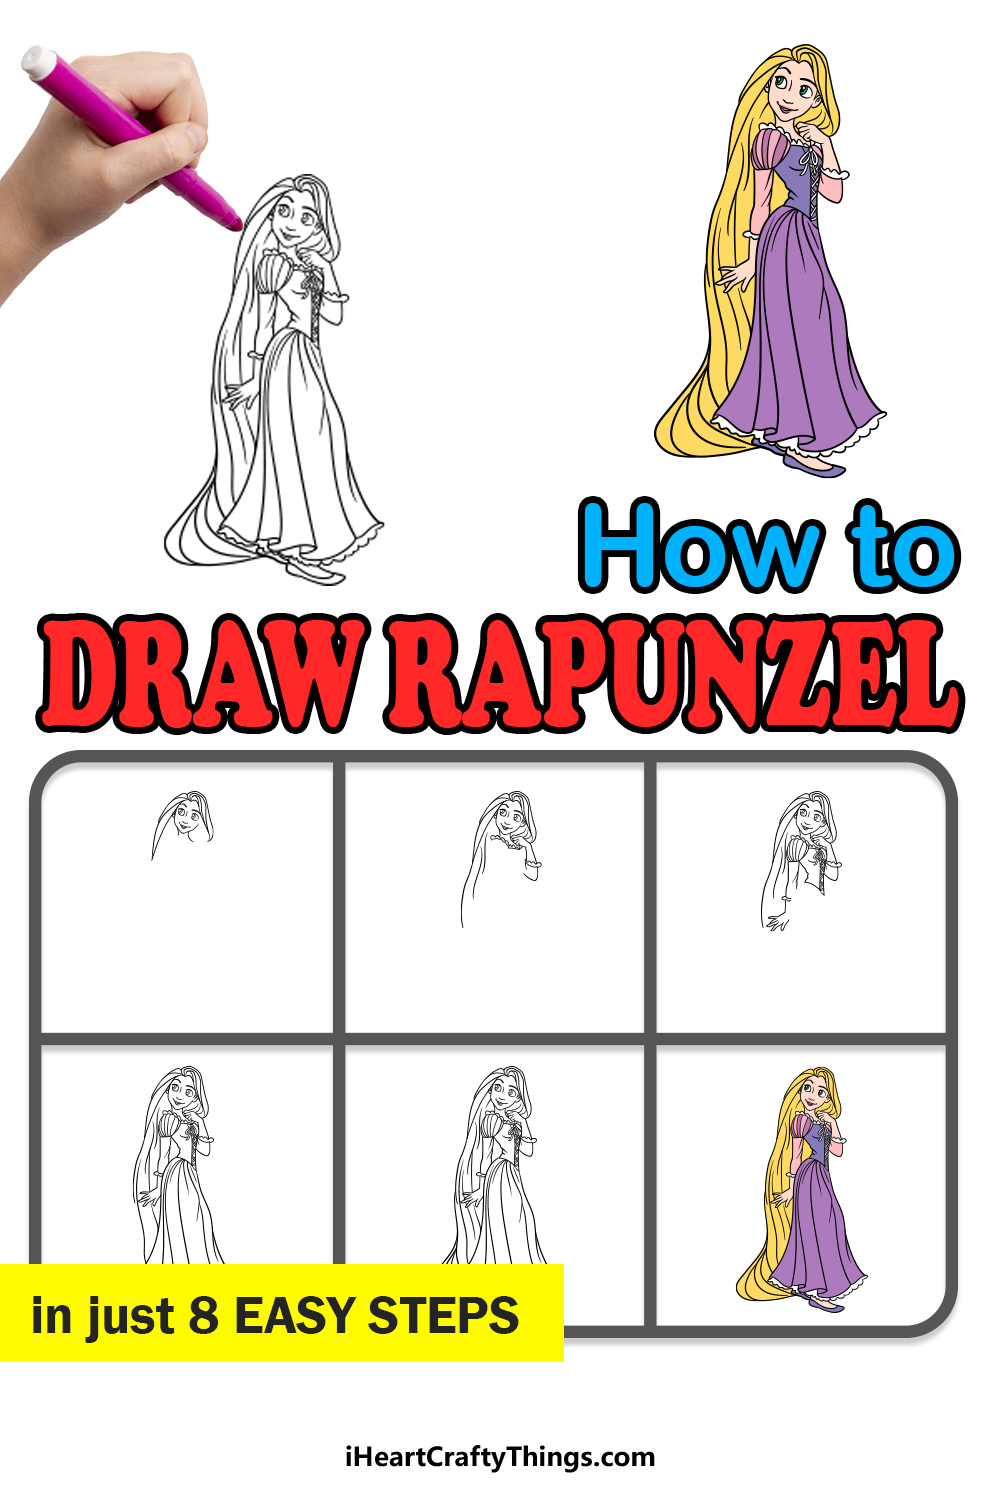 how to draw Rapunzel in 8 easy steps